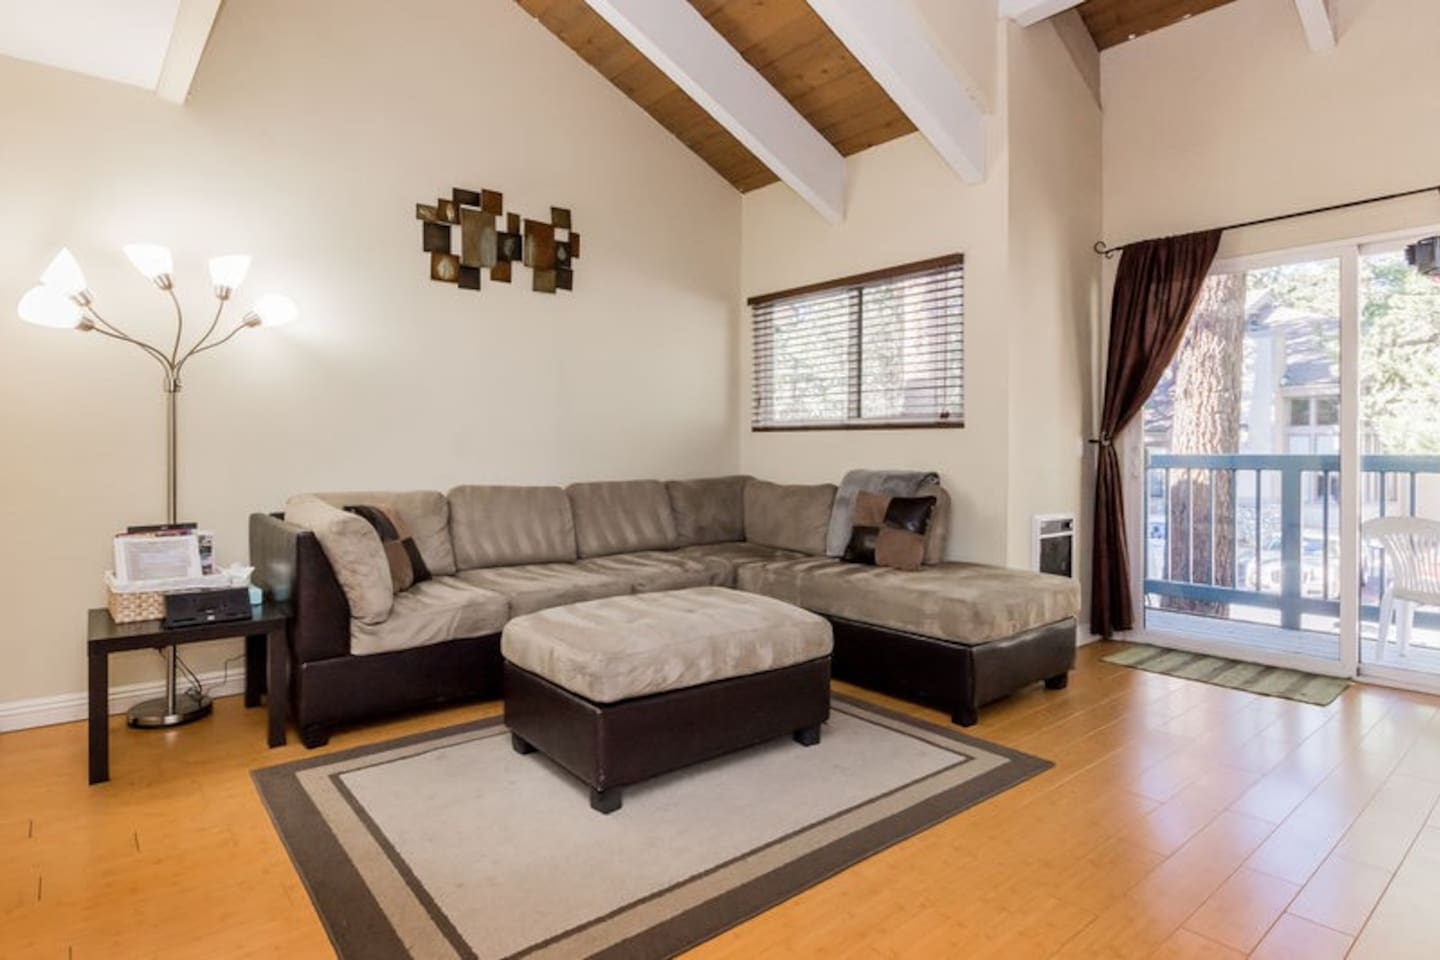 Living room with Flat screen TV, private patio access, and studio kitchen